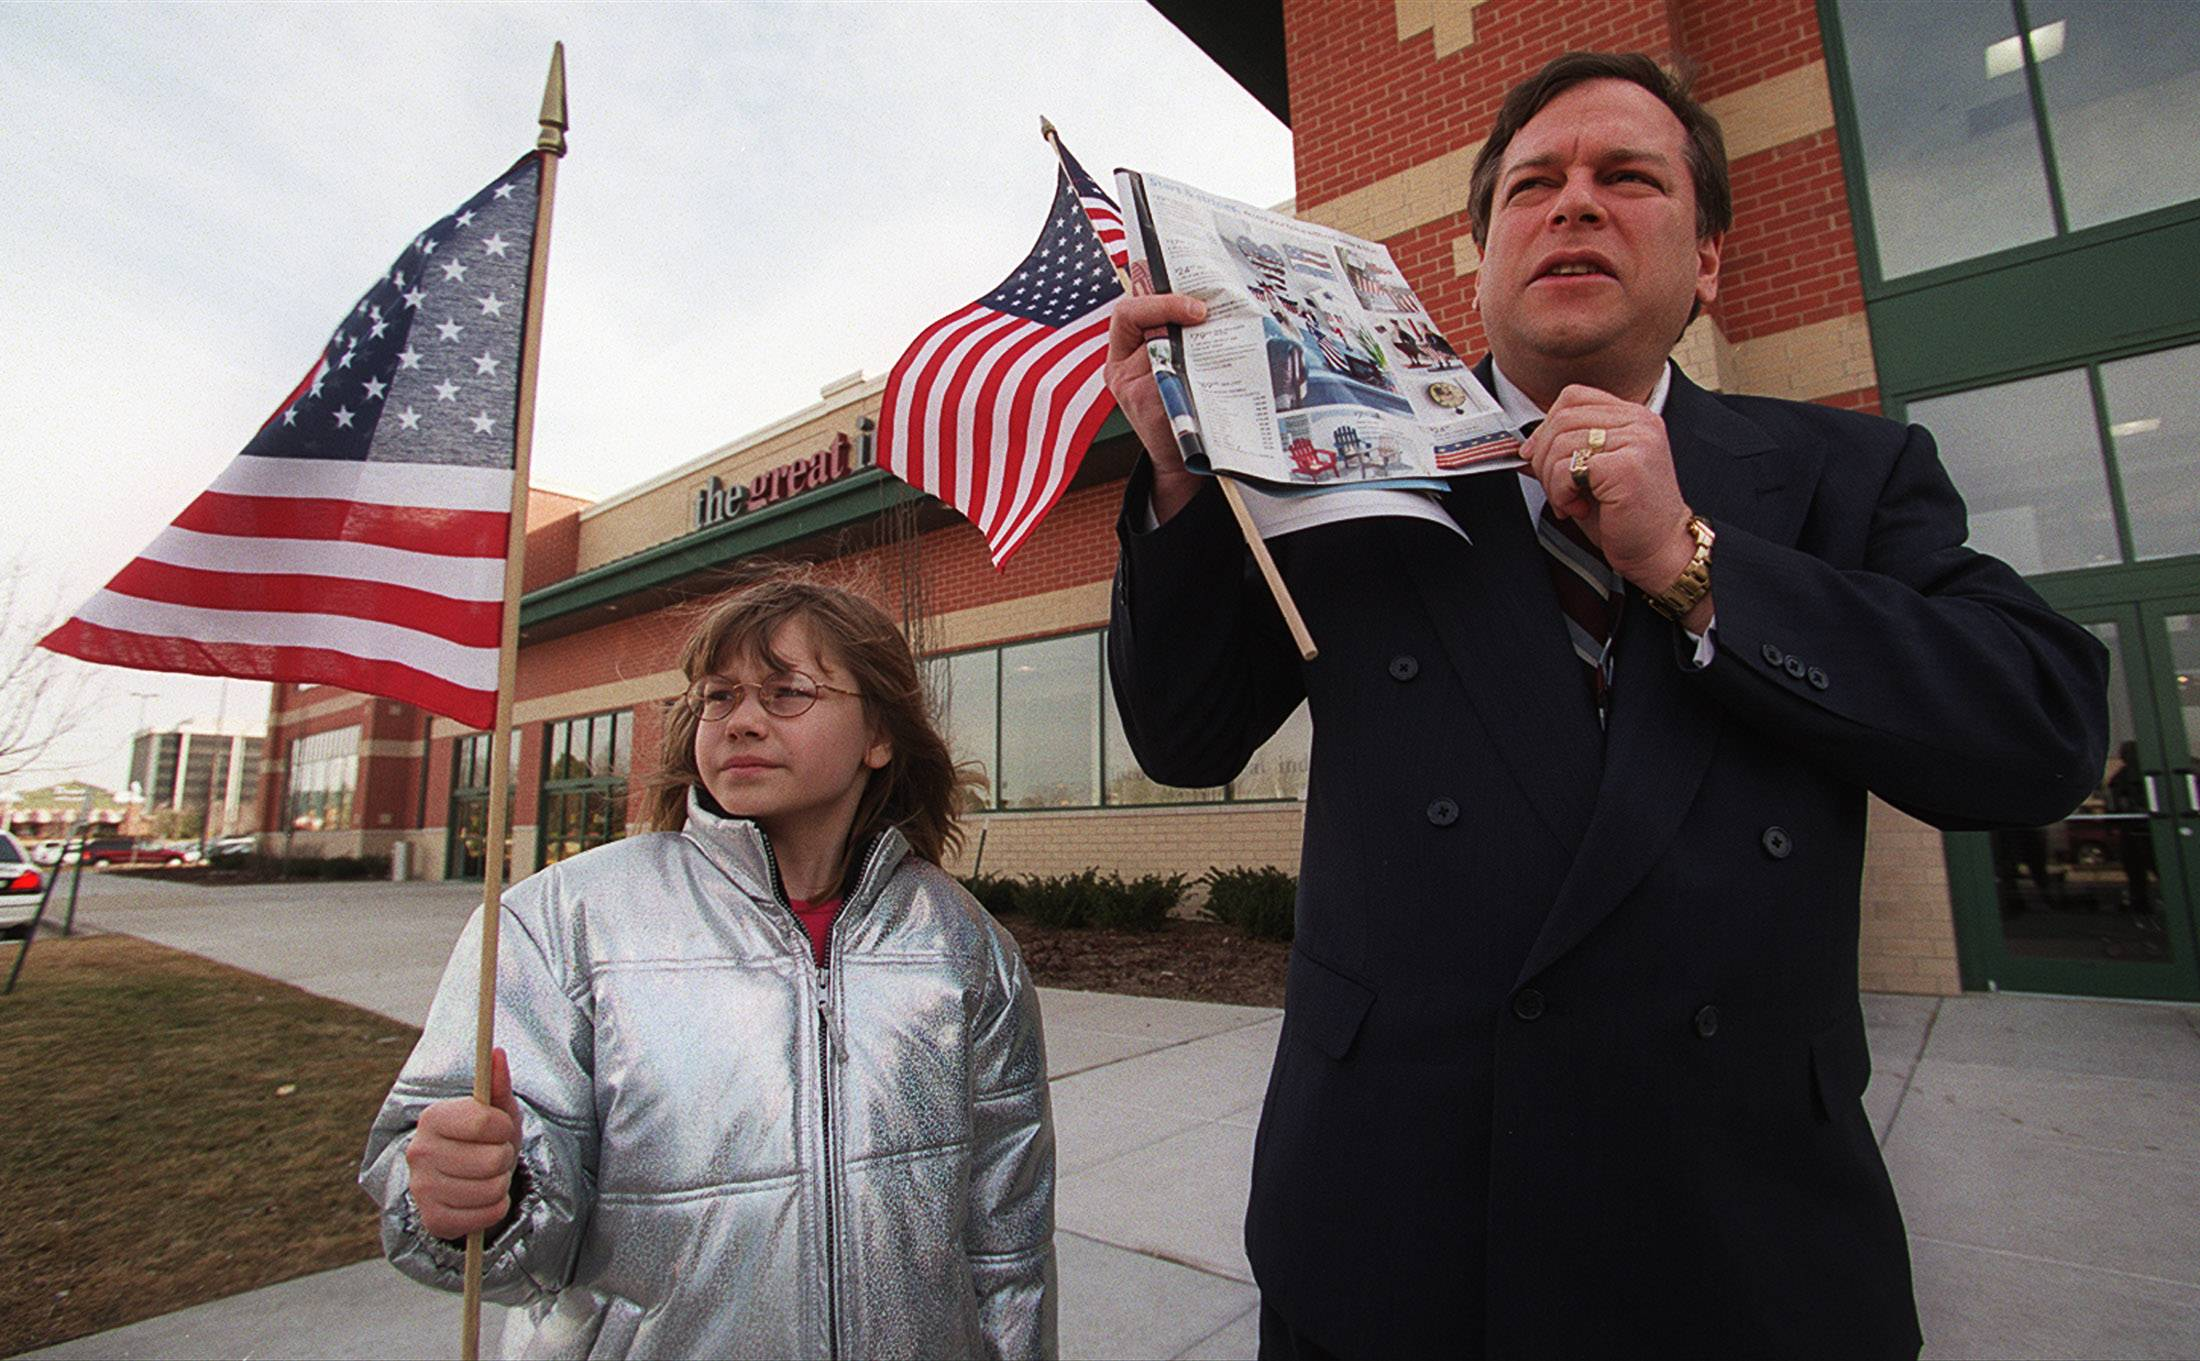 Rob Sherman and his then-8-year-old daughter, Dawn, hold a news conference outside a Schaumburg store to protest the selling of floor mats with American flag symbolism on them.